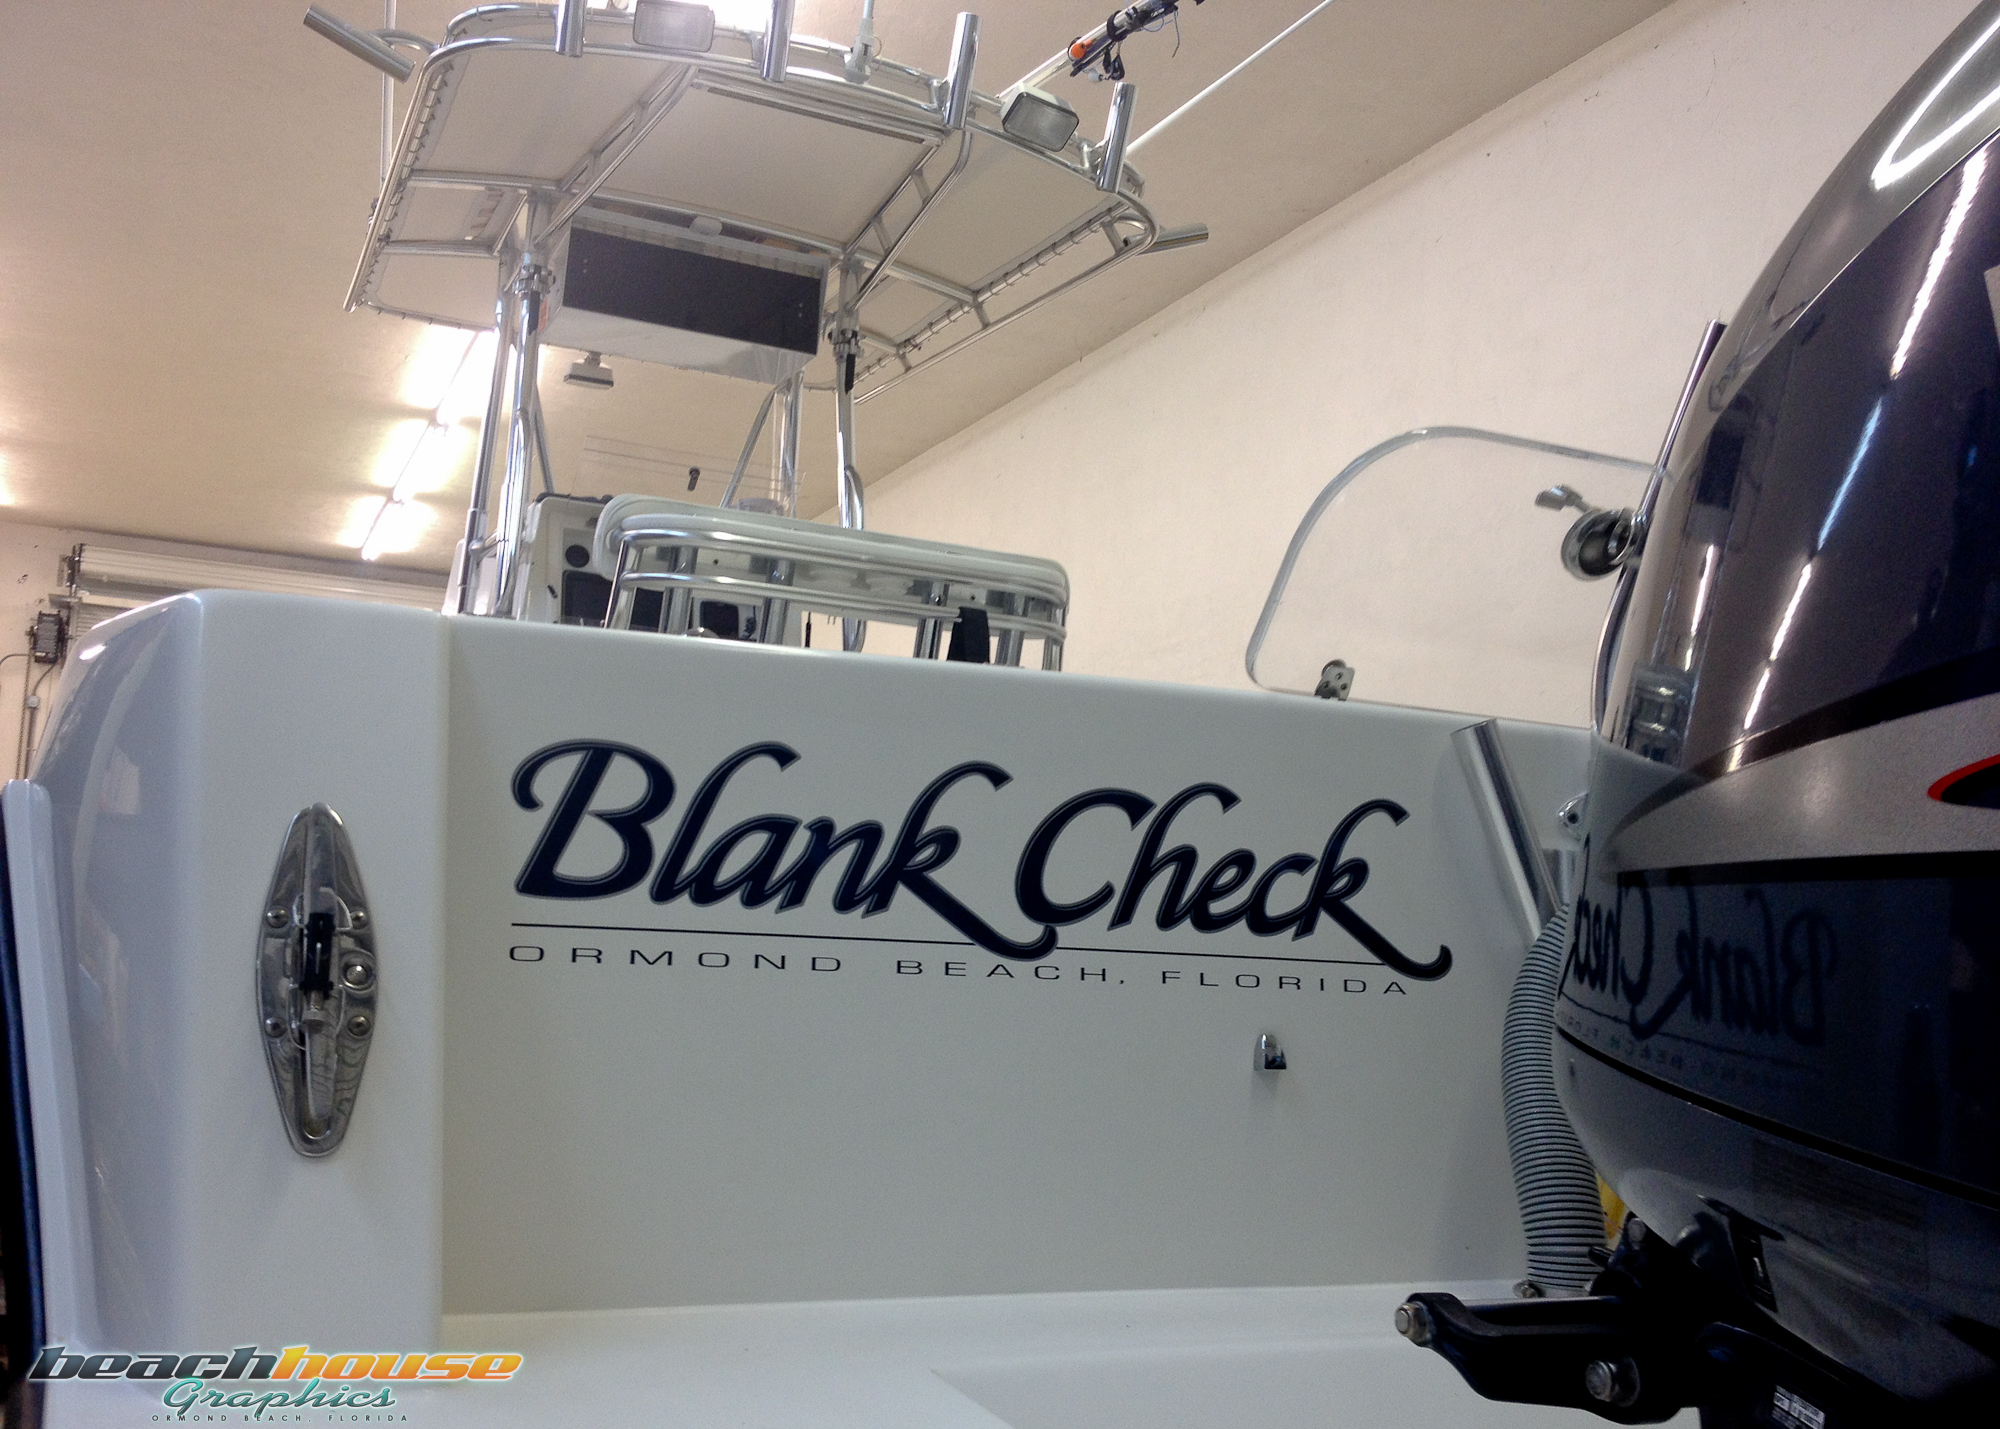 VinylLetteringBoatNameGraphicsDecalsStickersBlackCheck - Vinyl stickers for boats